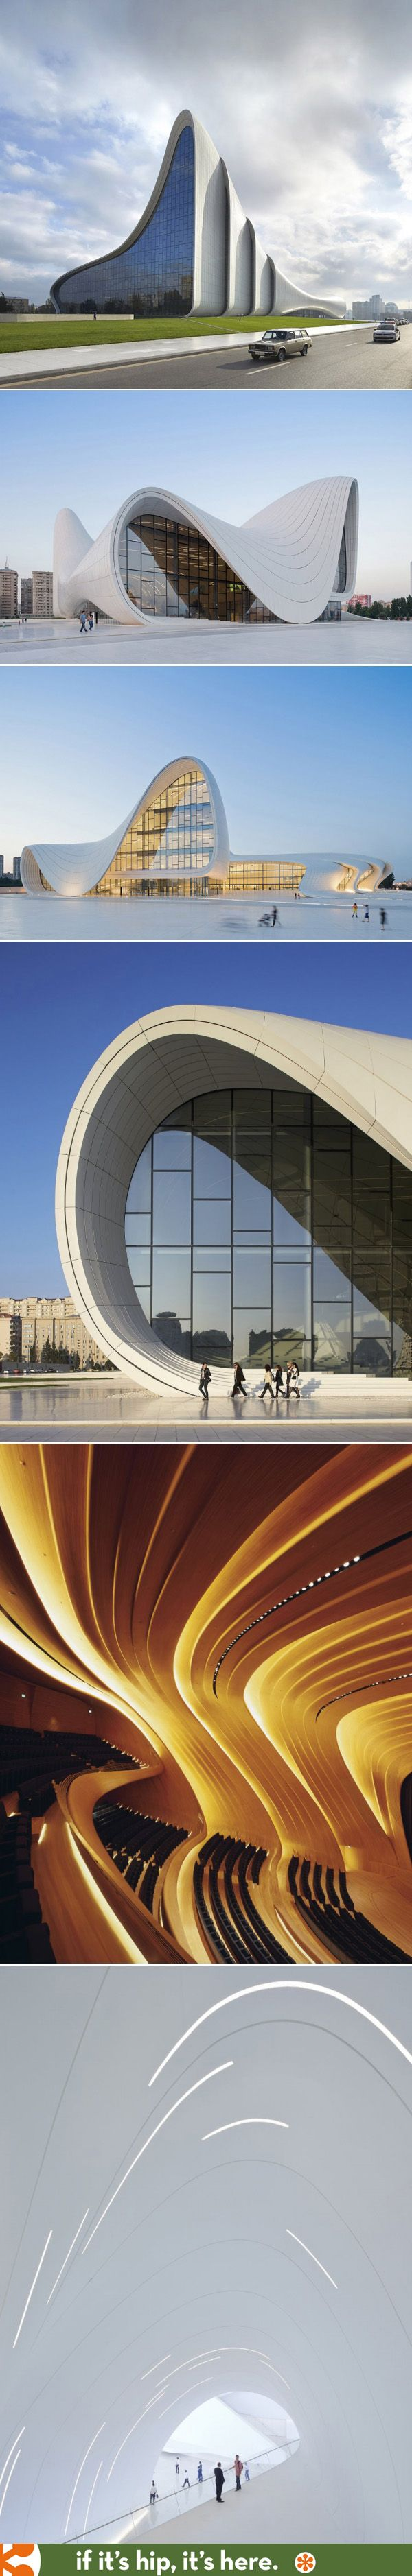 Zaha Hadid structures all have theme of having natural light and glass at the heart of his designs. the alluring curves of the building and the interesting perspectives adds interest not only the the outside of the building but also once inside,